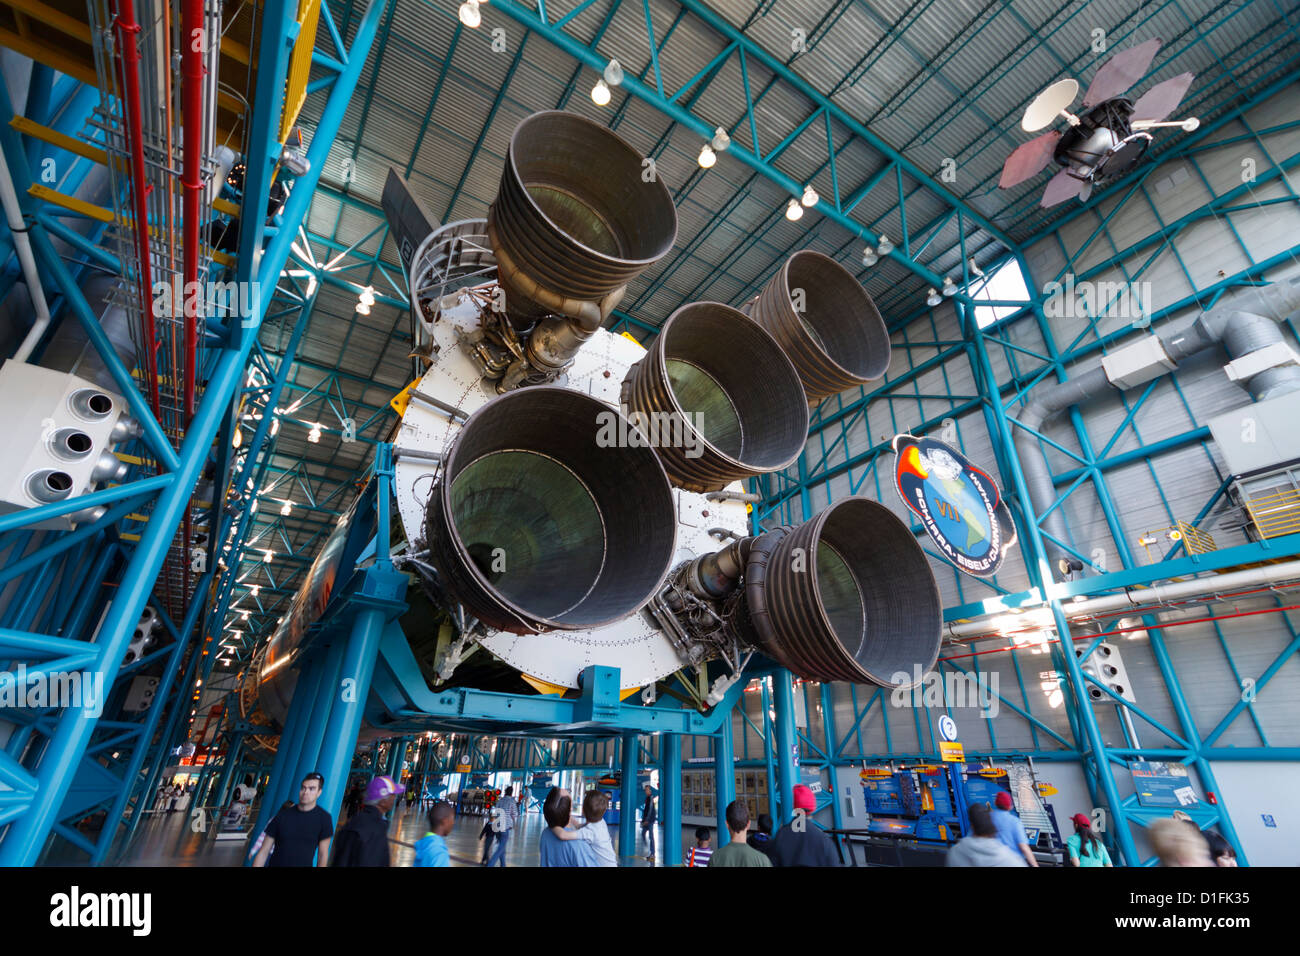 Nasa Rocket Engines Stock Photos Images Saturn V F1 Engine Diagram A View Of The First Stage On Mighty Image